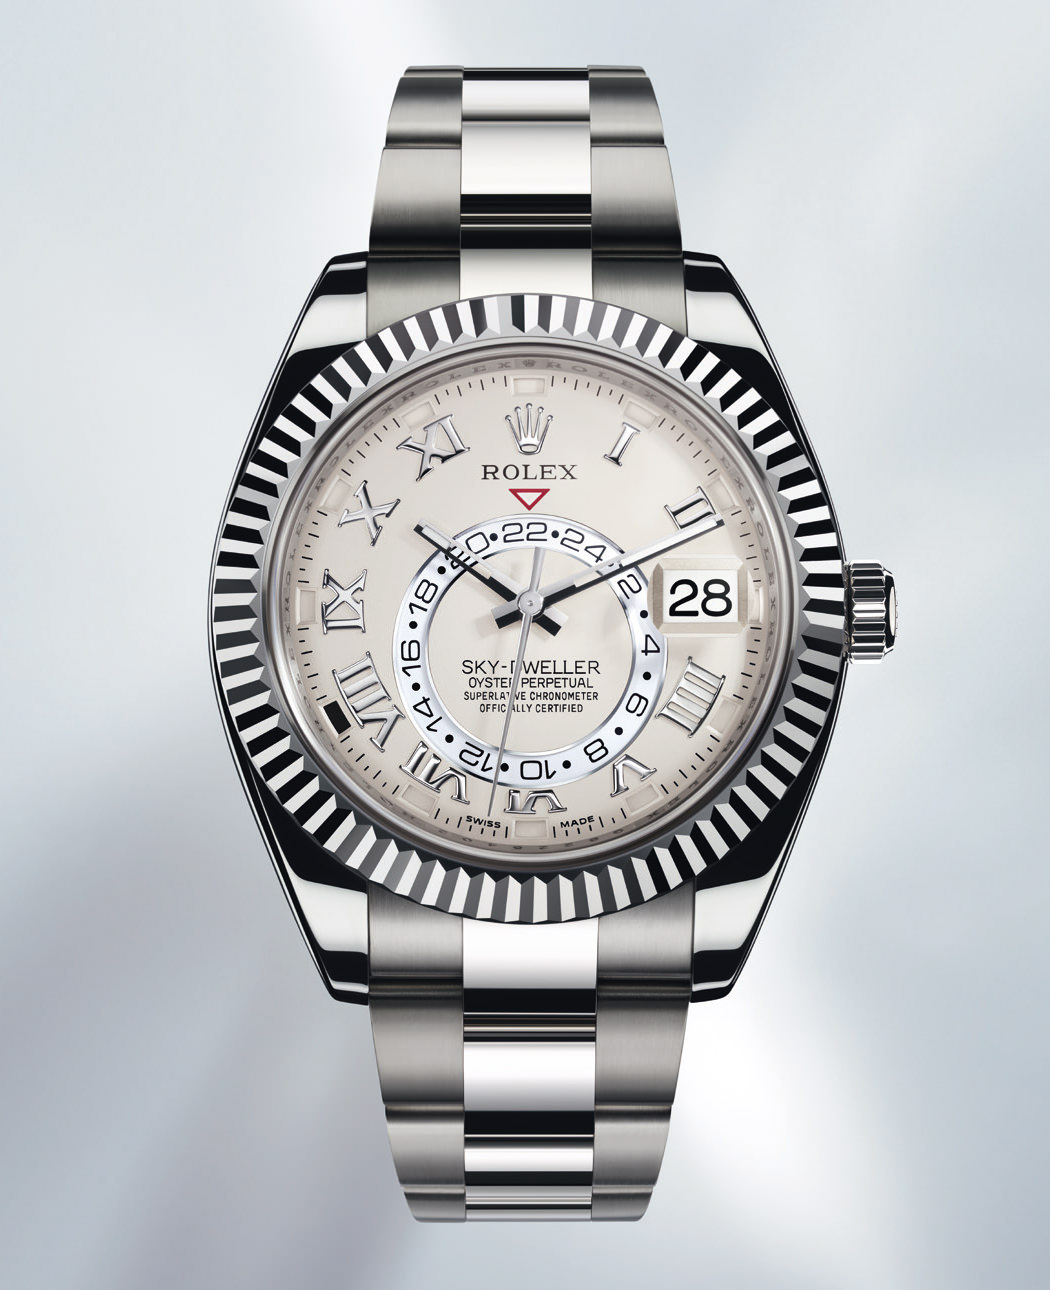 OYSTER PERPETUAL SKY-DWELLER WHITE GOLD de Rolex